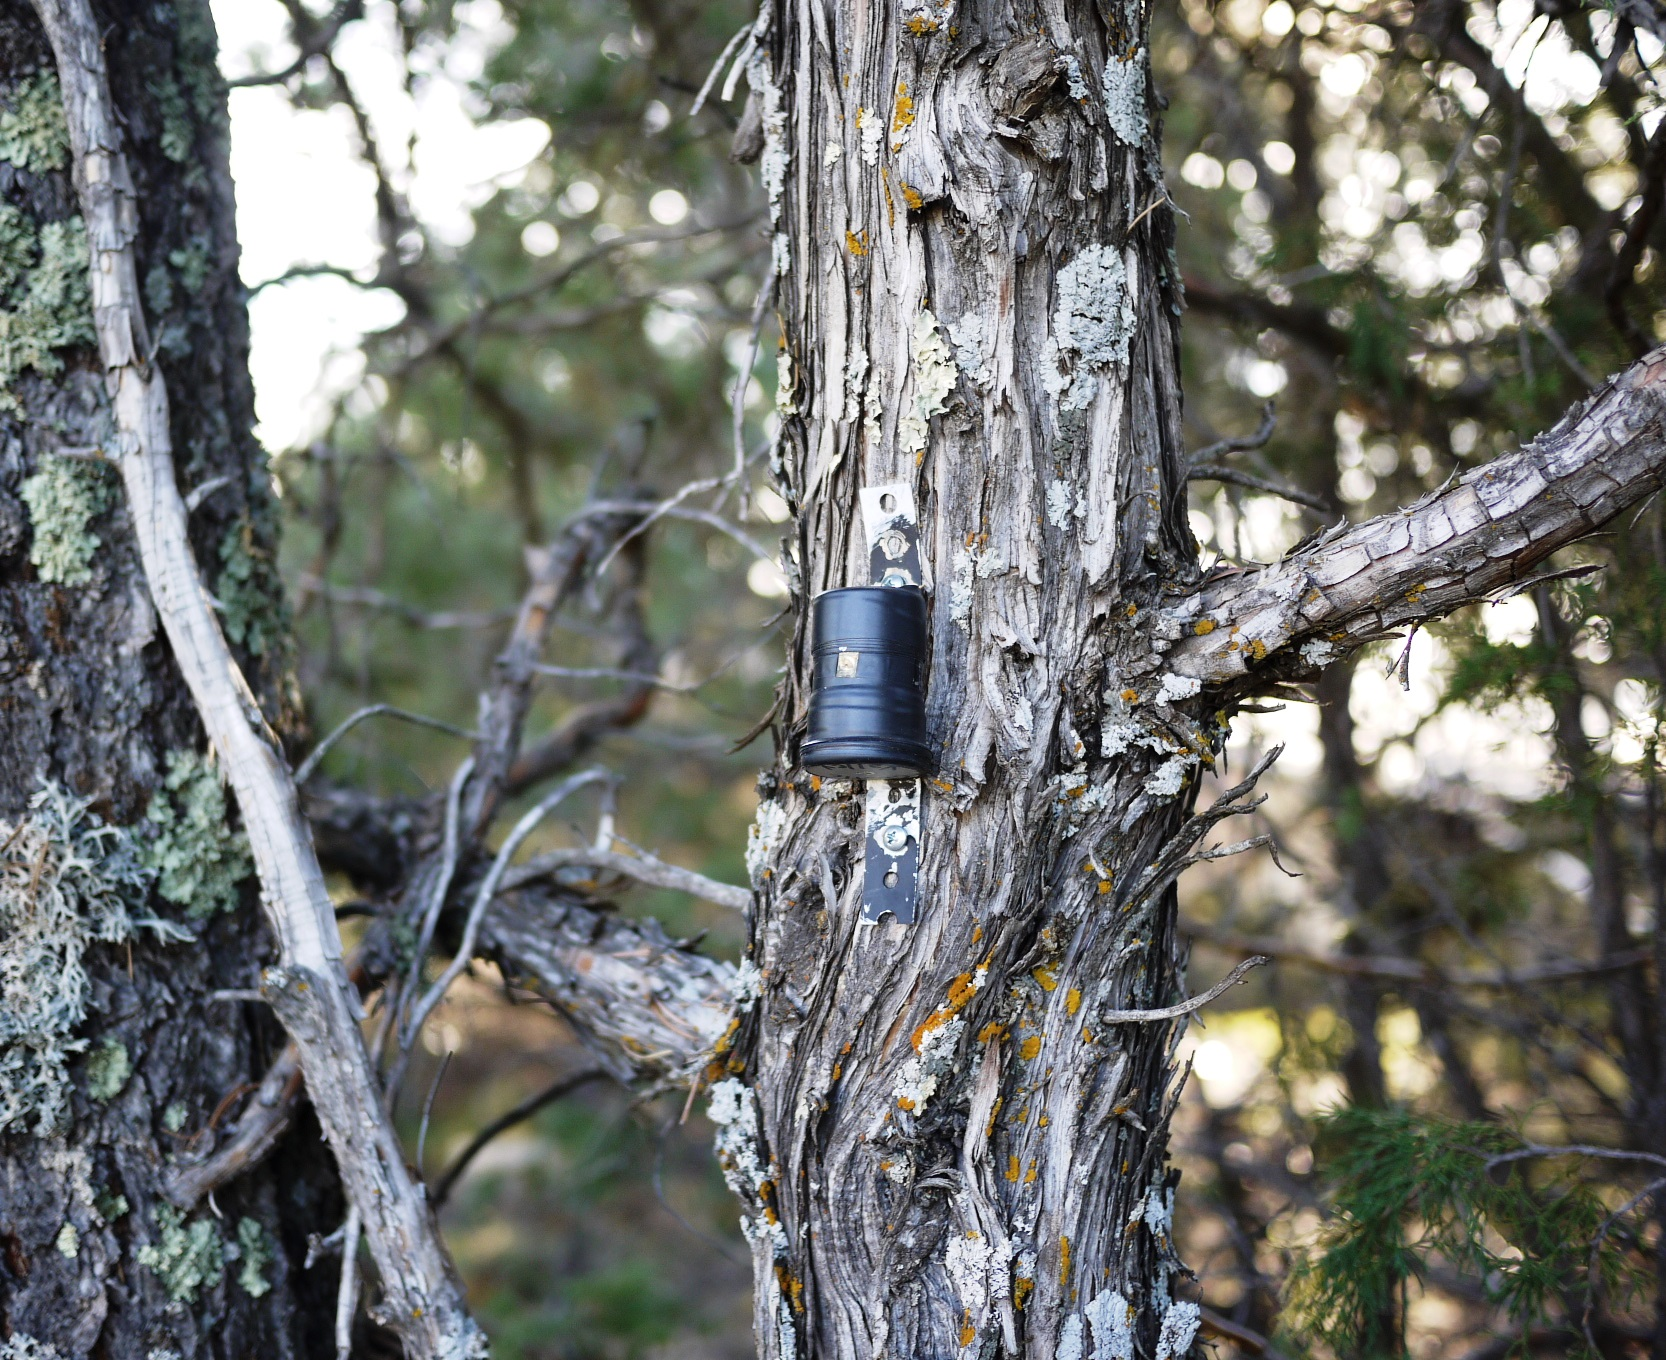 35mm can camera attached to a tree.